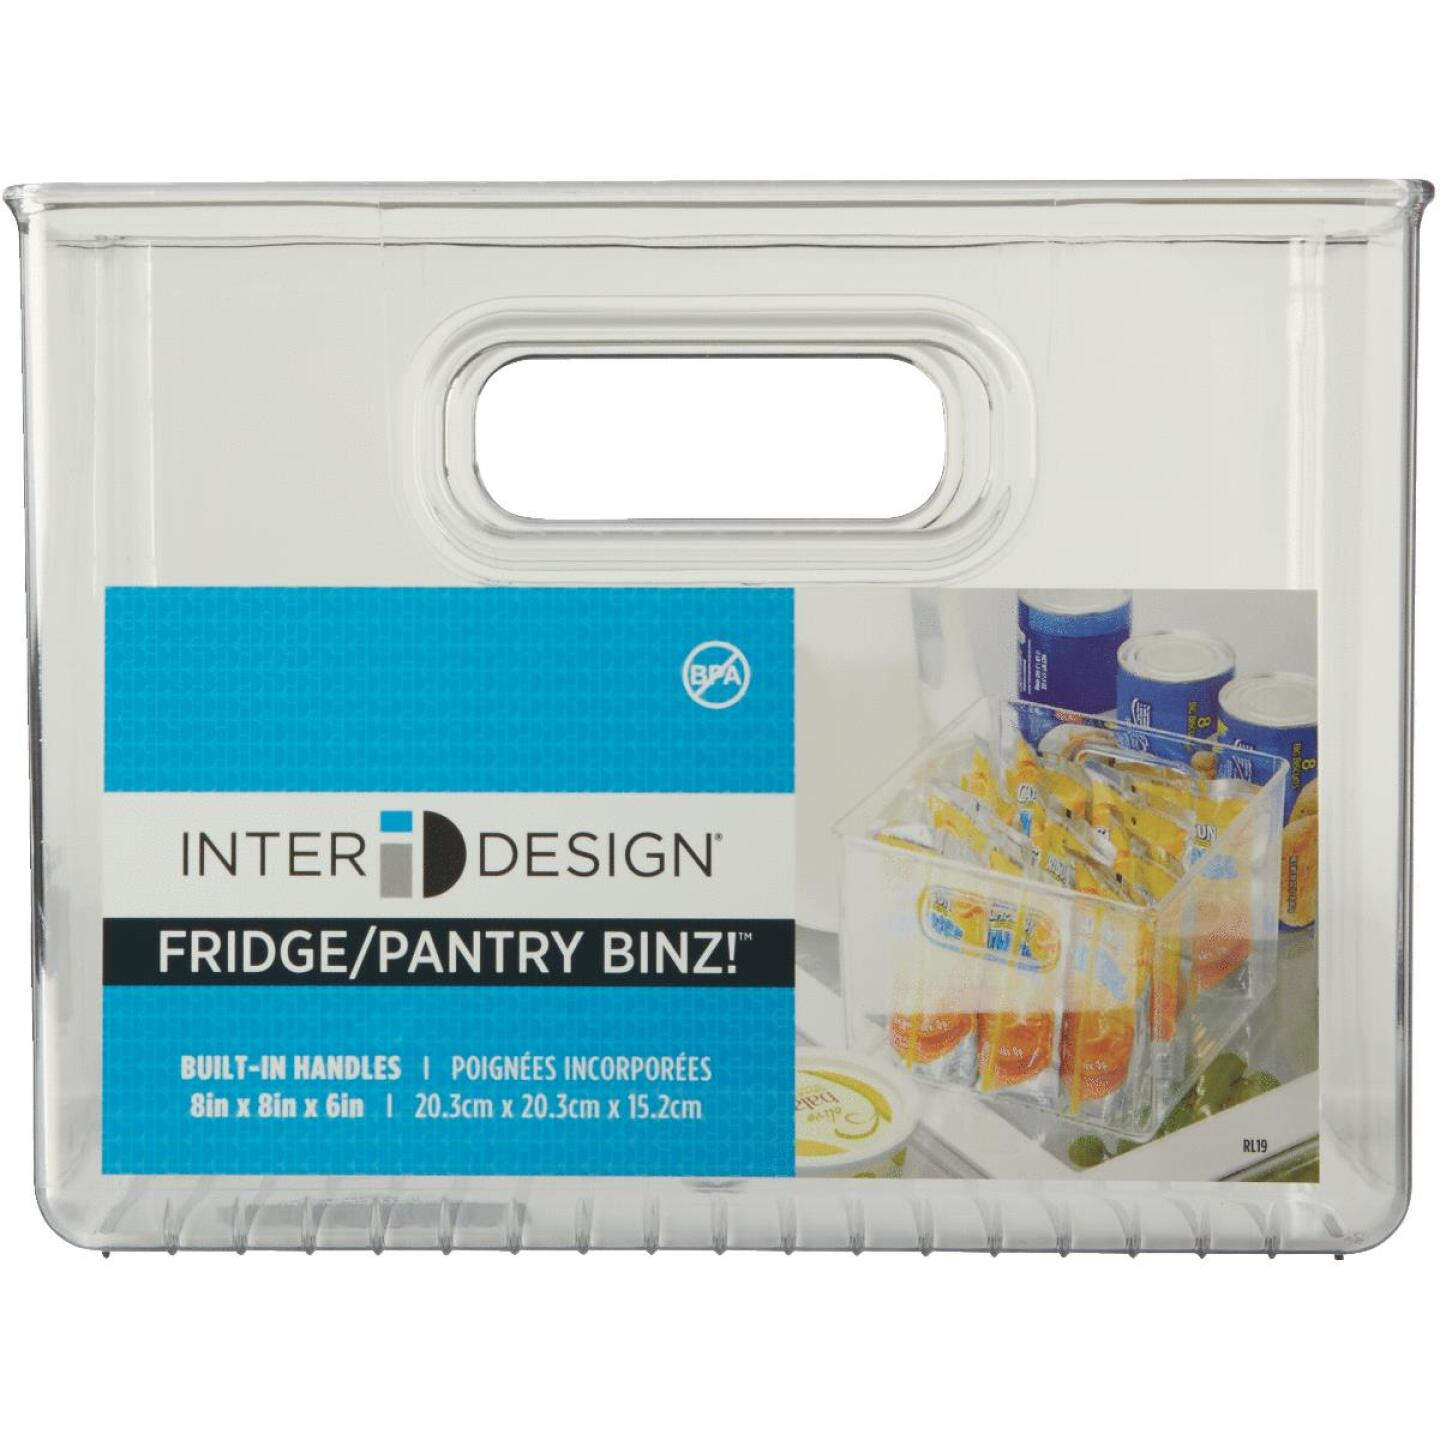 iDesign 8 In. W. x 8 In. D. x 6 In. H. Clear Fridge/Pantry Storage Binz Image 2